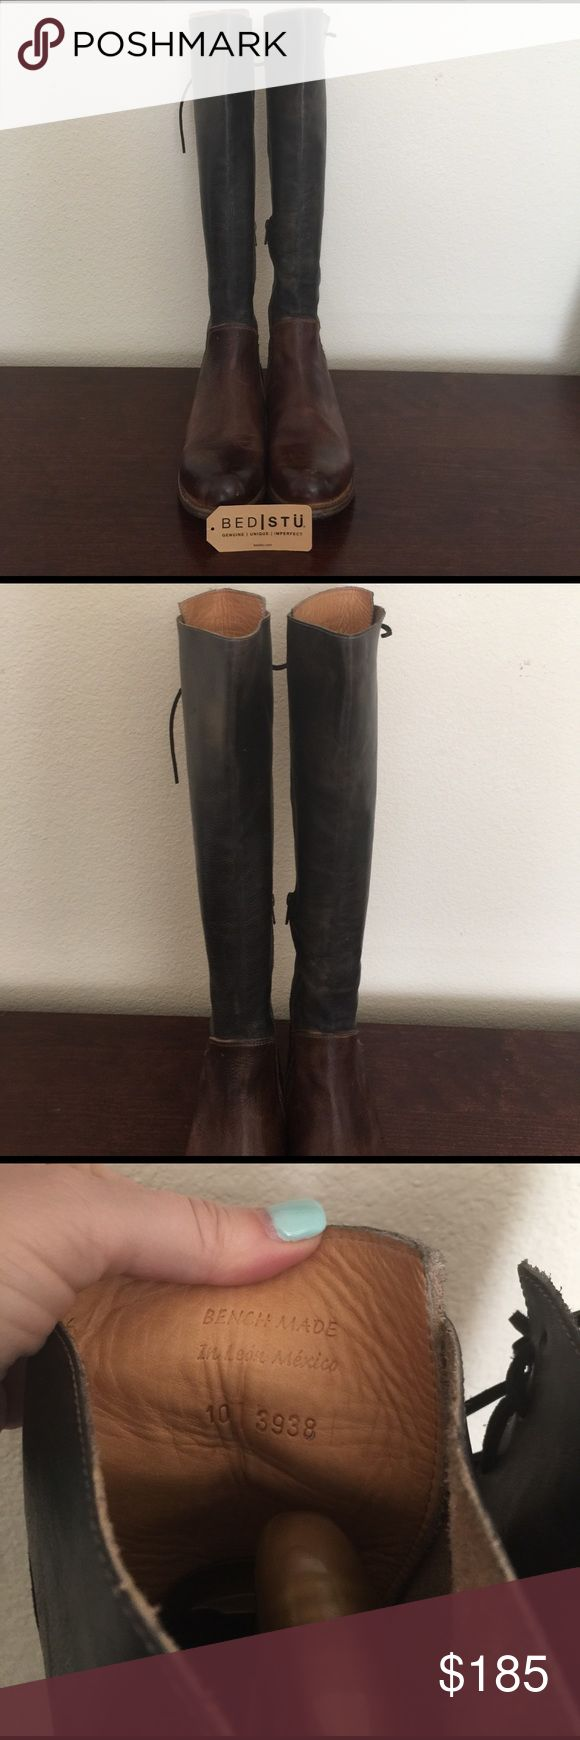 Bed stu Manchester II black/teak rustic size 10 Worn a whole 2 times. Distressed look. Their ad even says imperfect. That's the beauty of it. Get these for a good deal. Next ones up are 250 bucks. These are black and brown so you can wear with both colors. Very versatile and comfortable. Comes to knee as entire boot is 20 inches tall. Make me an offer. I try to price things under the competition which is a quicker sale (so I'm more firm) for me and a better price for you. Will be folded to…